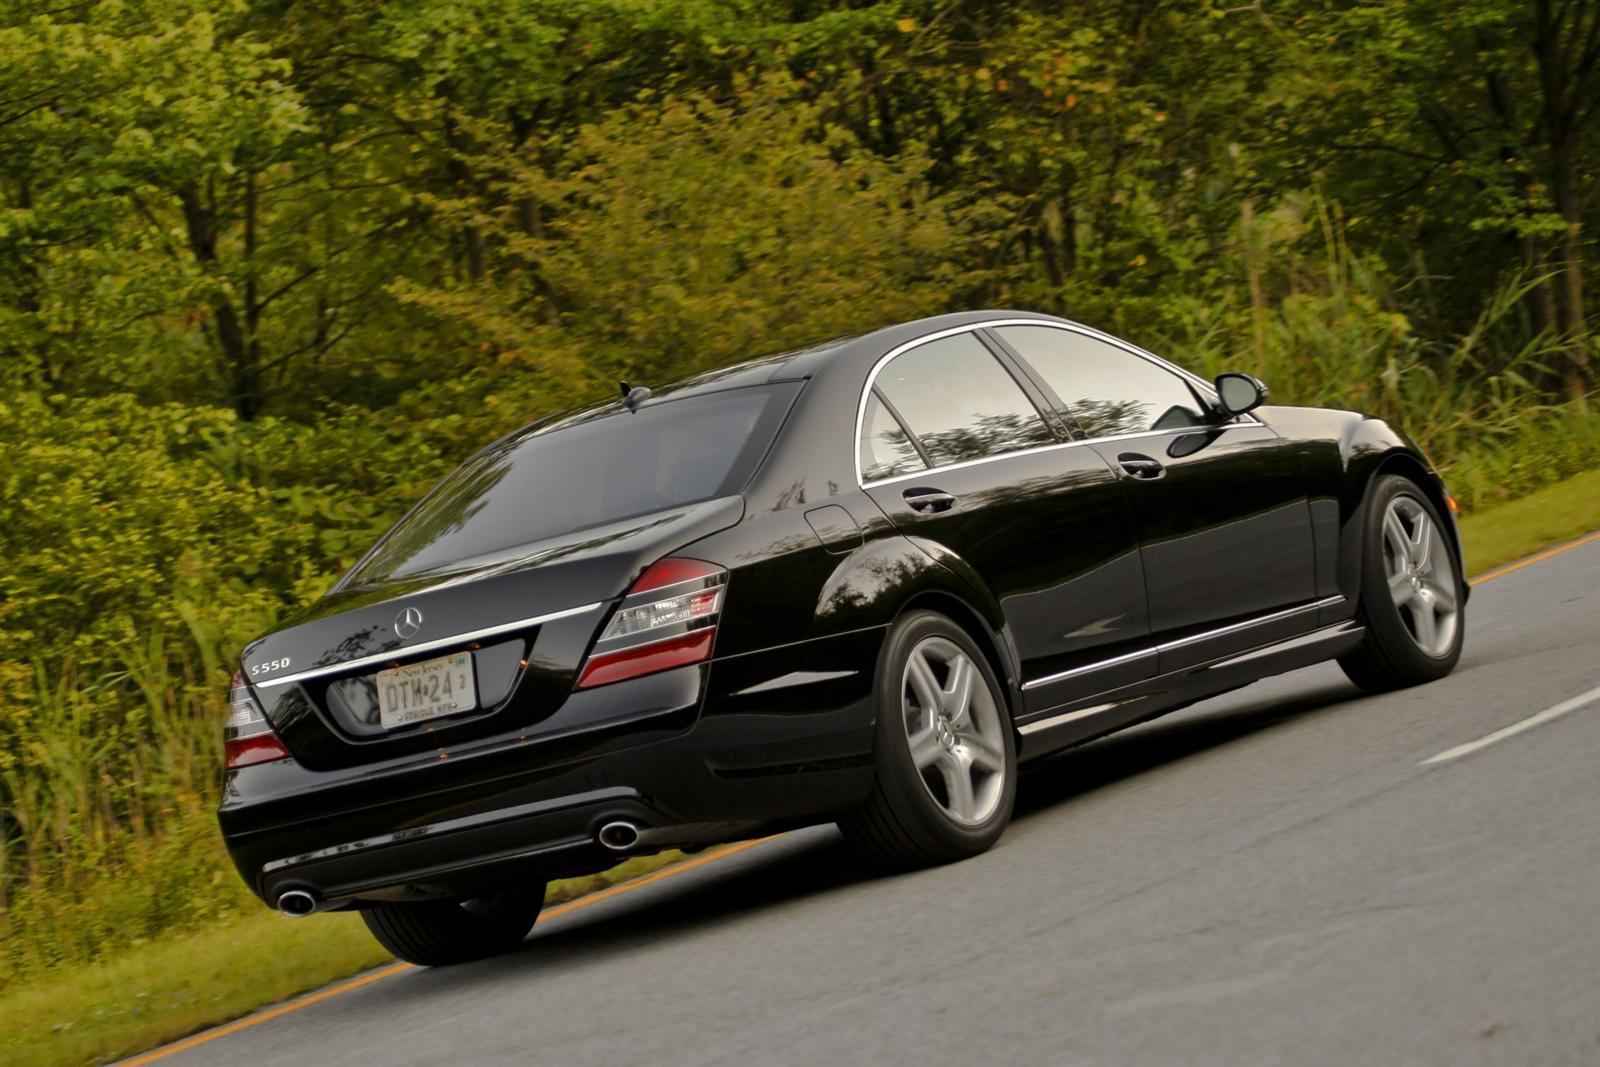 2009 mercedes benz s class image for Mercedes benz s550 2009